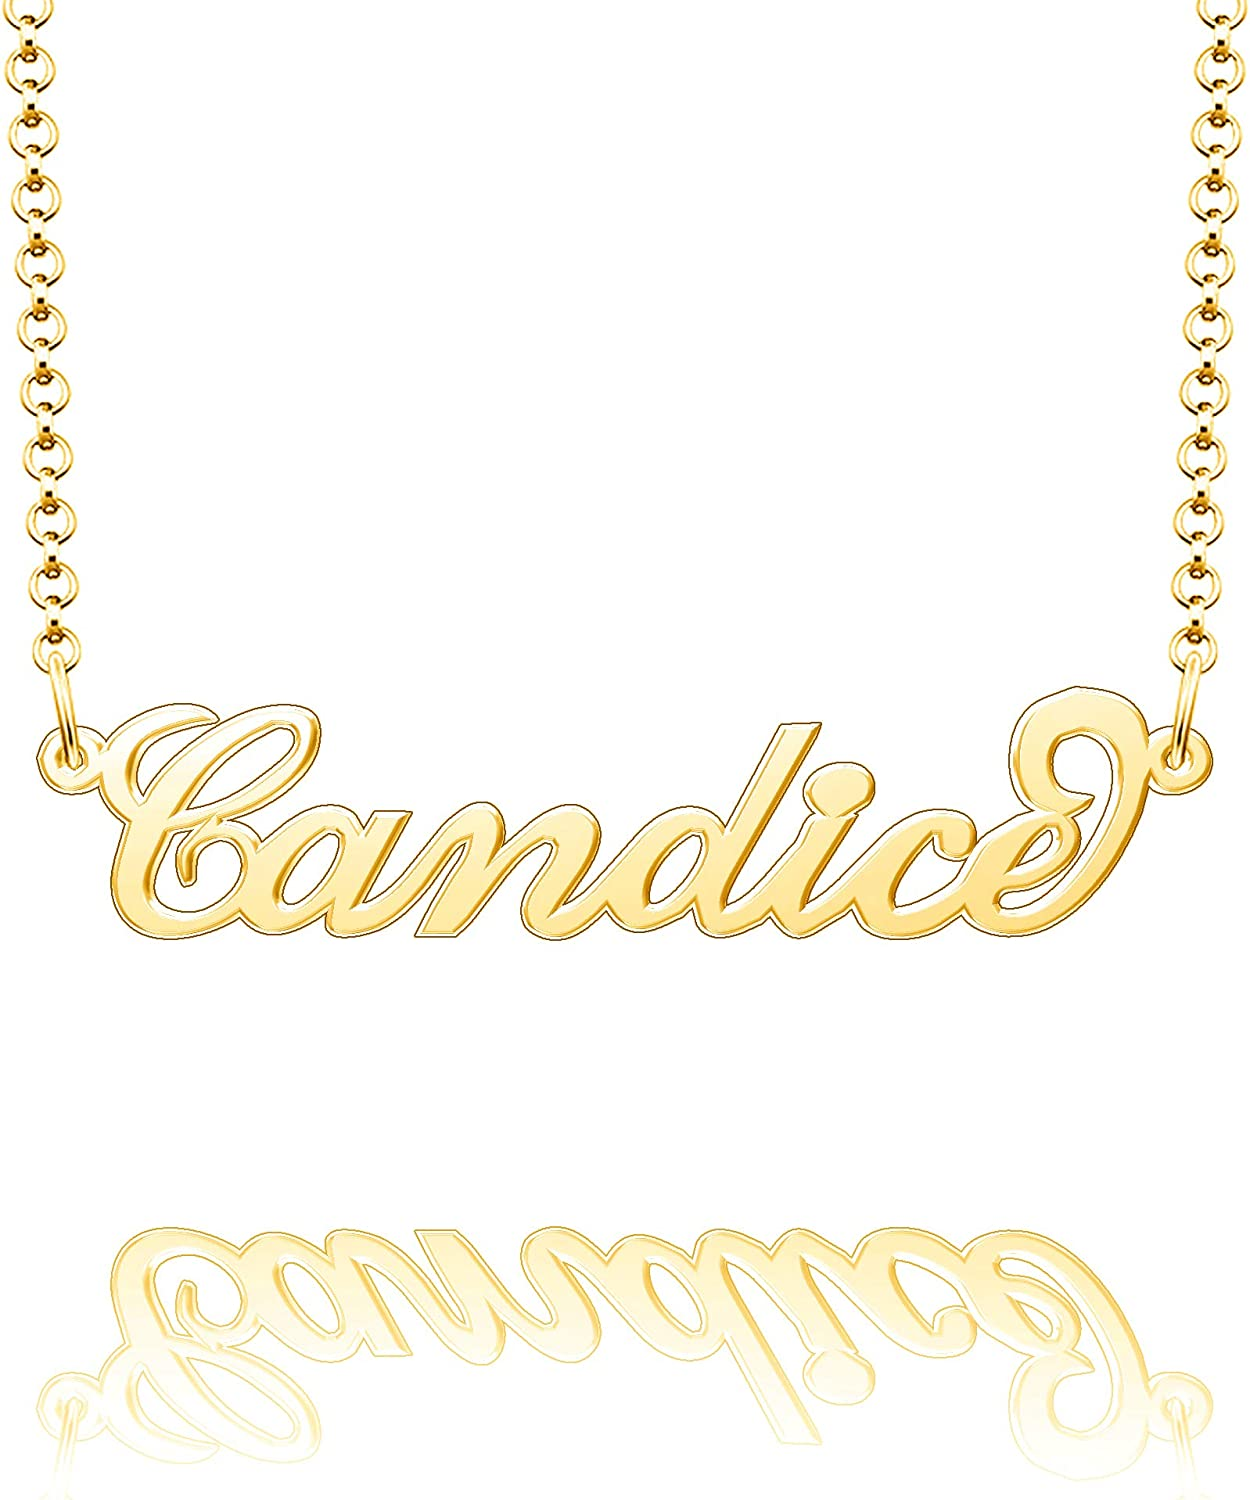 Moonlight Collections Monogram Necklace Personalized Nameplate Necklace Candice